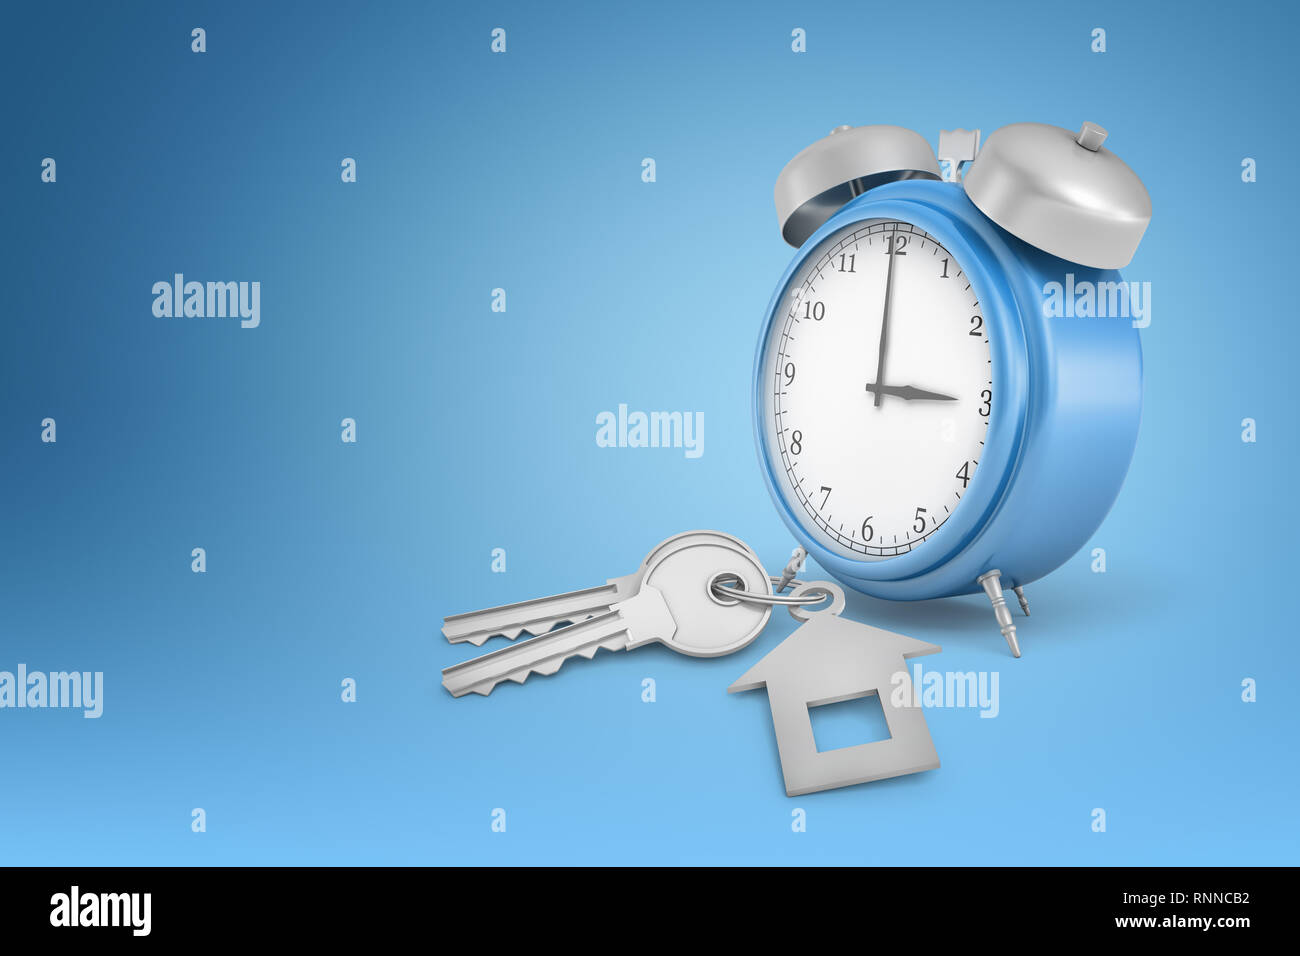 3d rendering of a blue alarm clock and grey keys on a blue